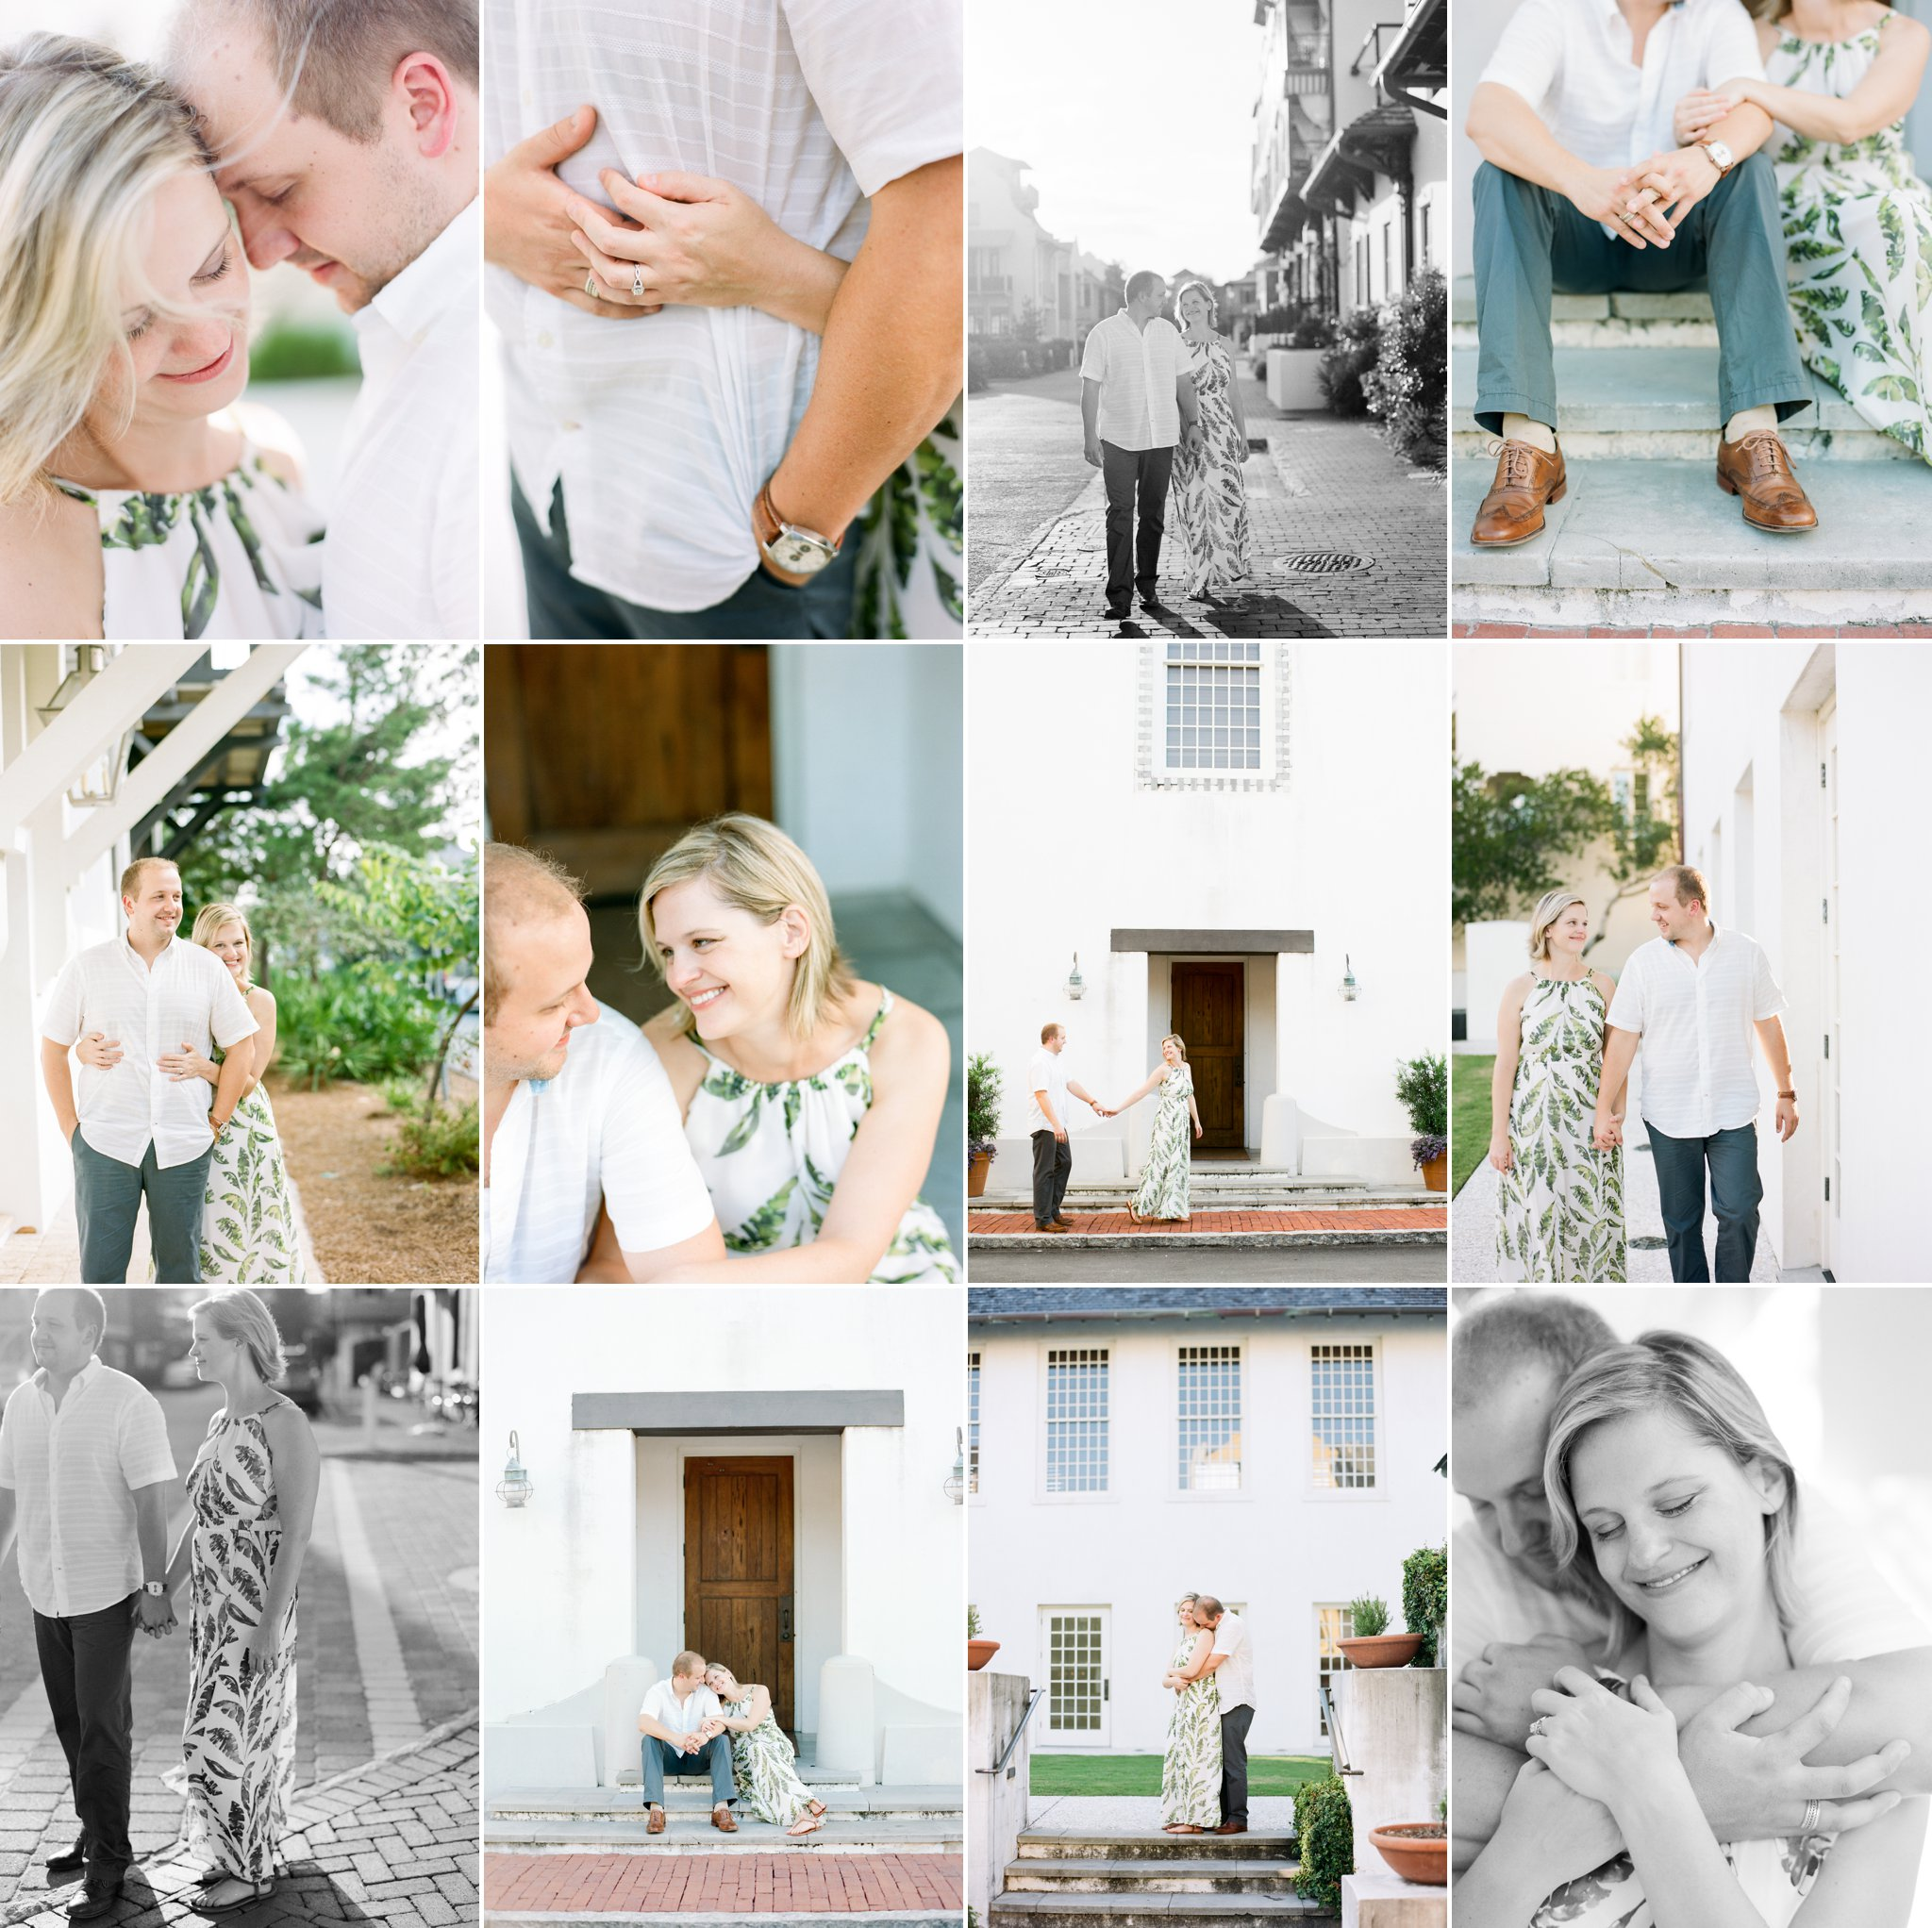 rosemary beach wedding photographer shannon griffin photography_0002.jpg